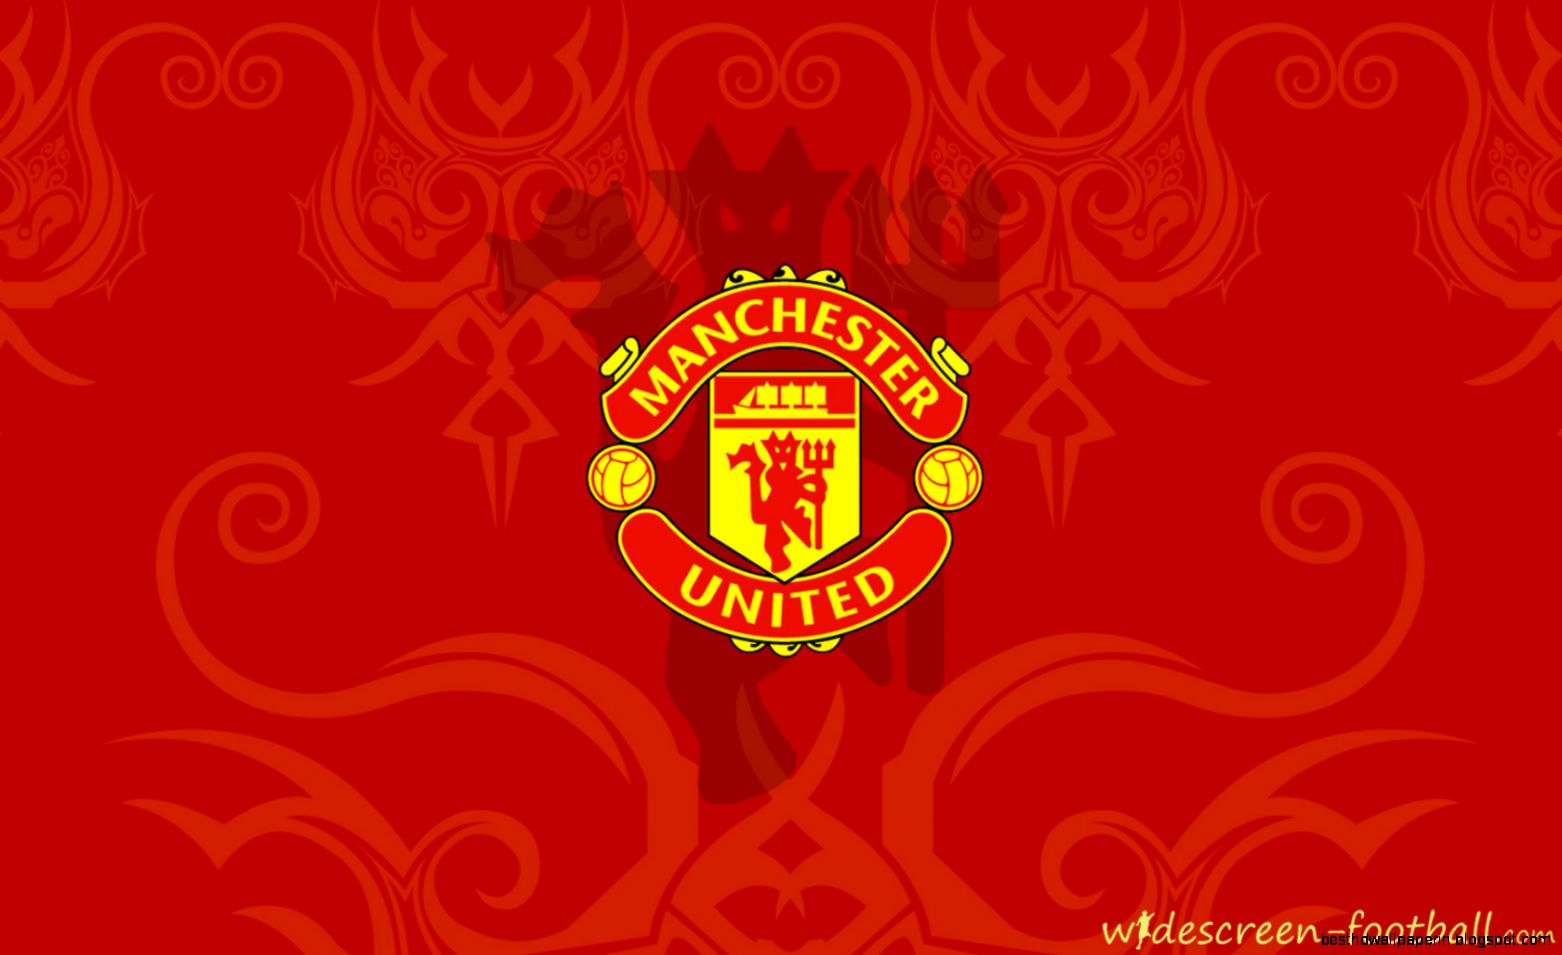 Manchester united wallpaper screensaver best hd wallpapers view original size manchester united android wallpapers 960x854 cell phone hd wallpaper voltagebd Image collections